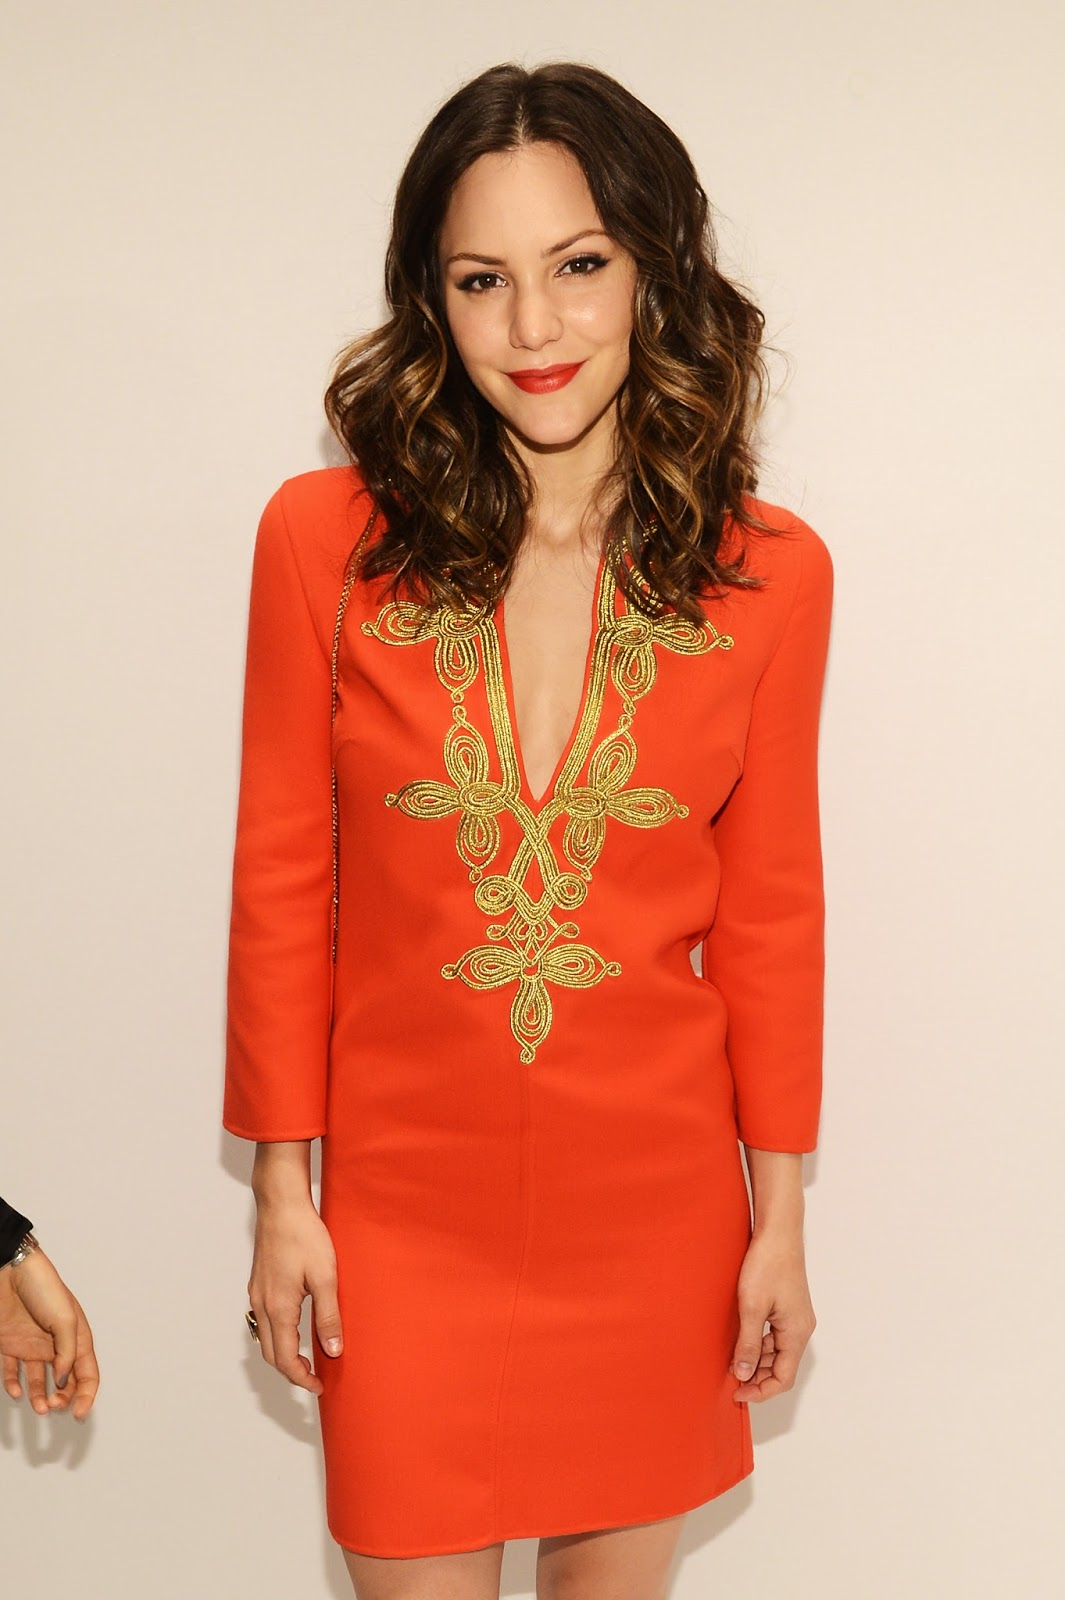 HQ Wallpapers and Photos Katharine McPhee at Mercedes-Benz Fashion Week